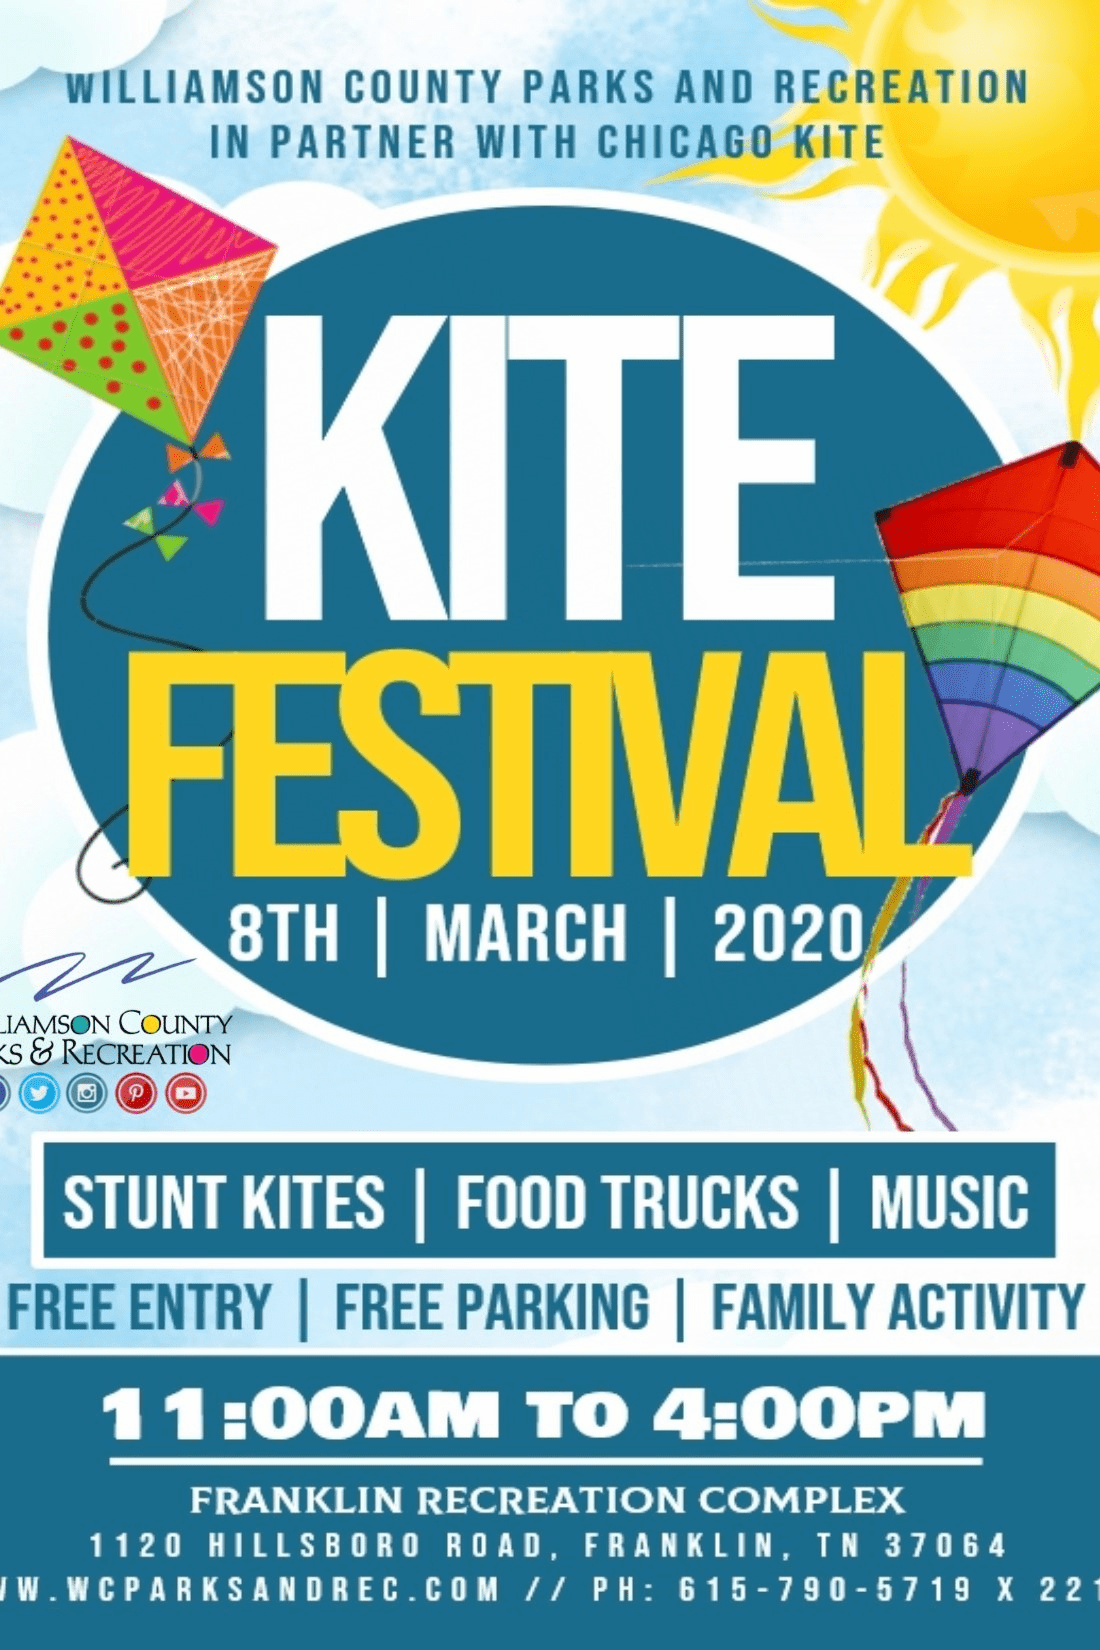 Franklin Recreation Complex Kite Festival March 8th 2020 Franklin Tennessee